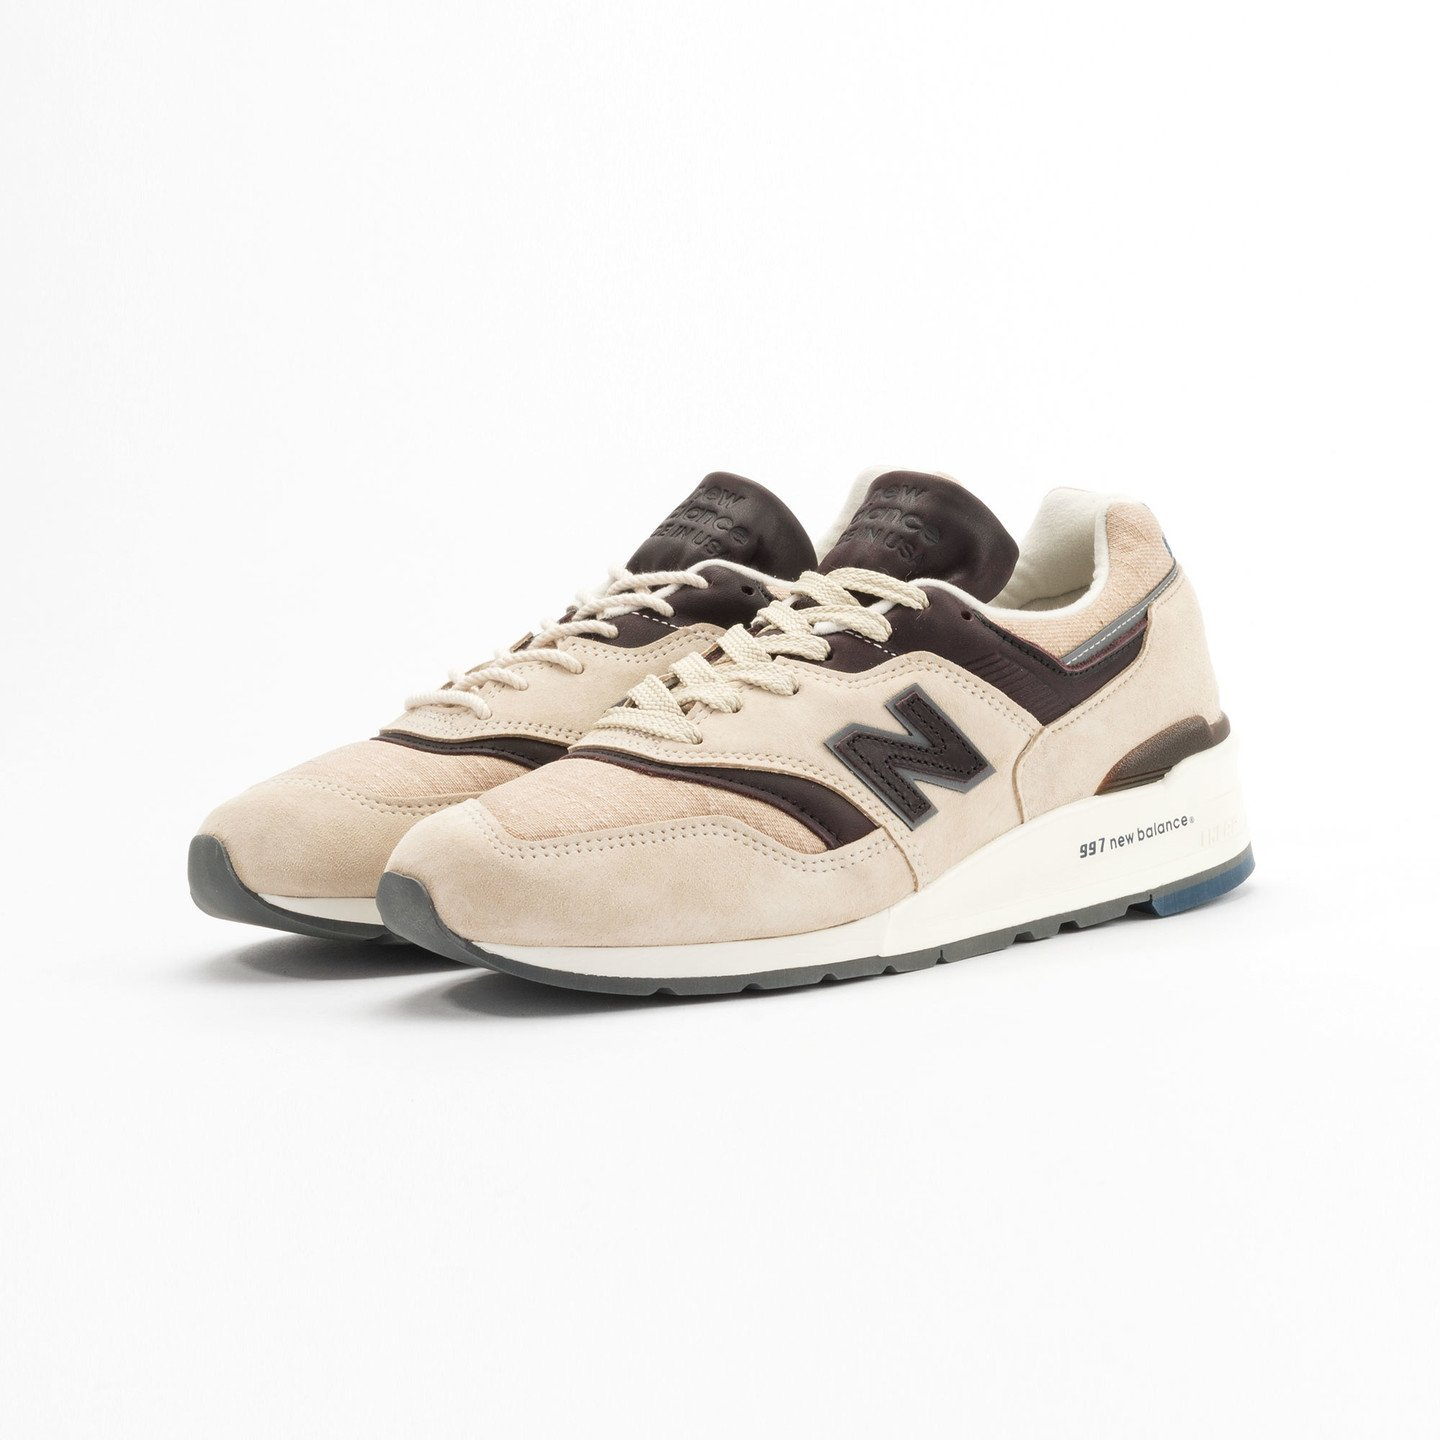 New Balance M997 DSAI - Made in USA Sand / Antique Brown M997DSAI-44